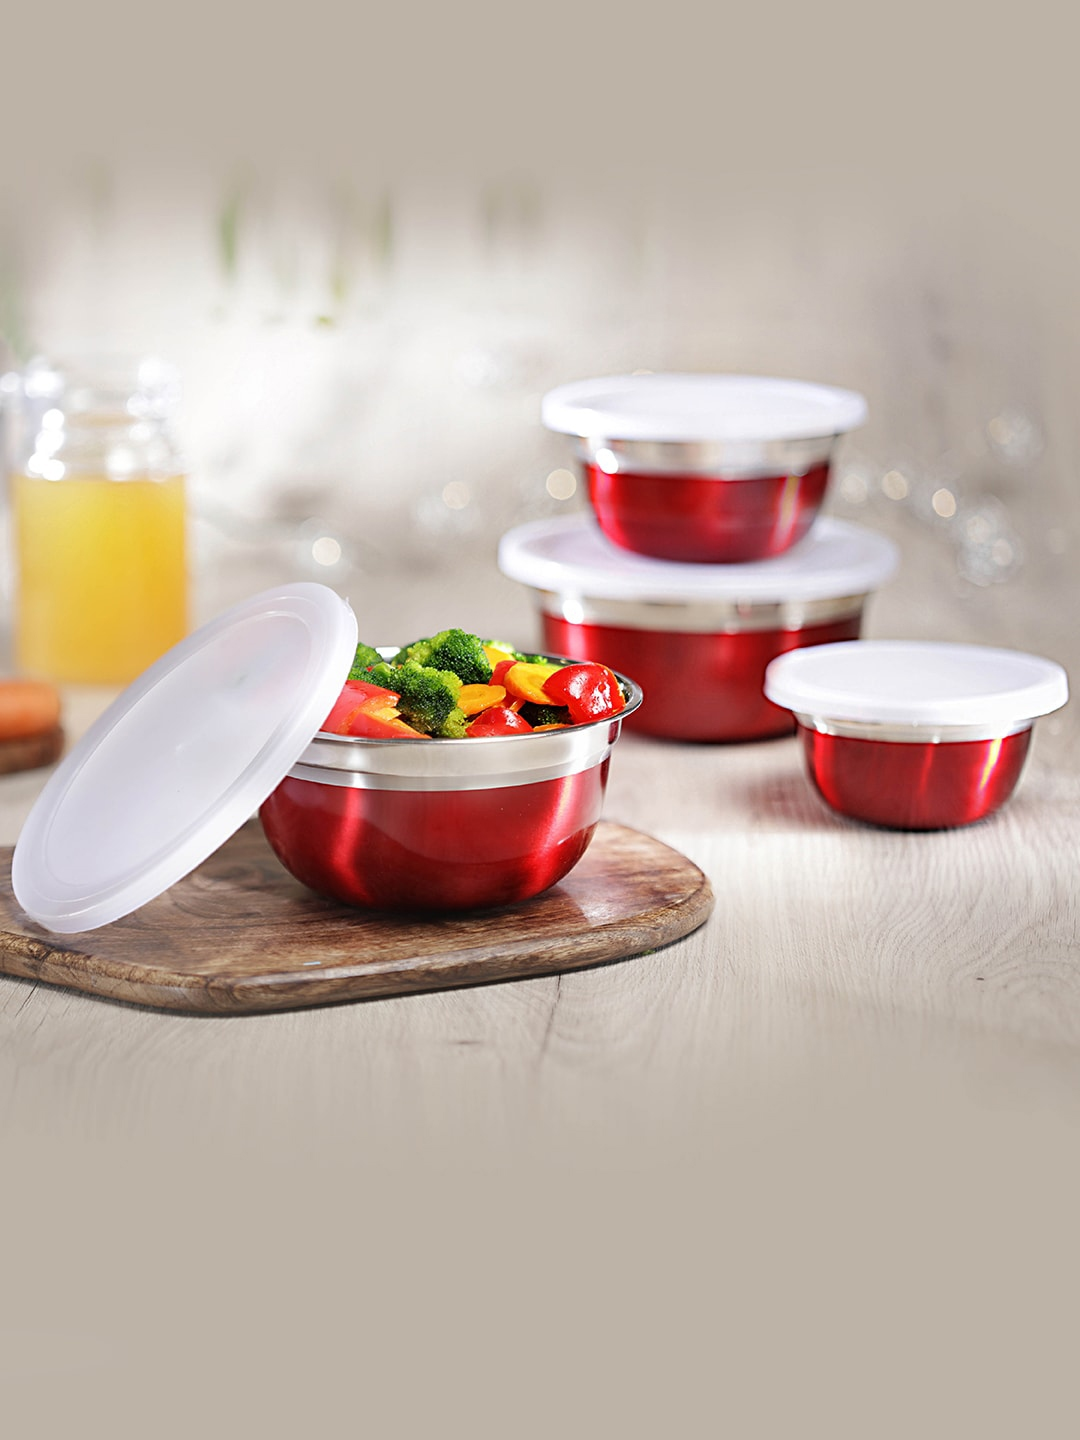 Jensons Set Of 4 Red   Silver Toned Stainless Steel Fiesta Bowl With Led